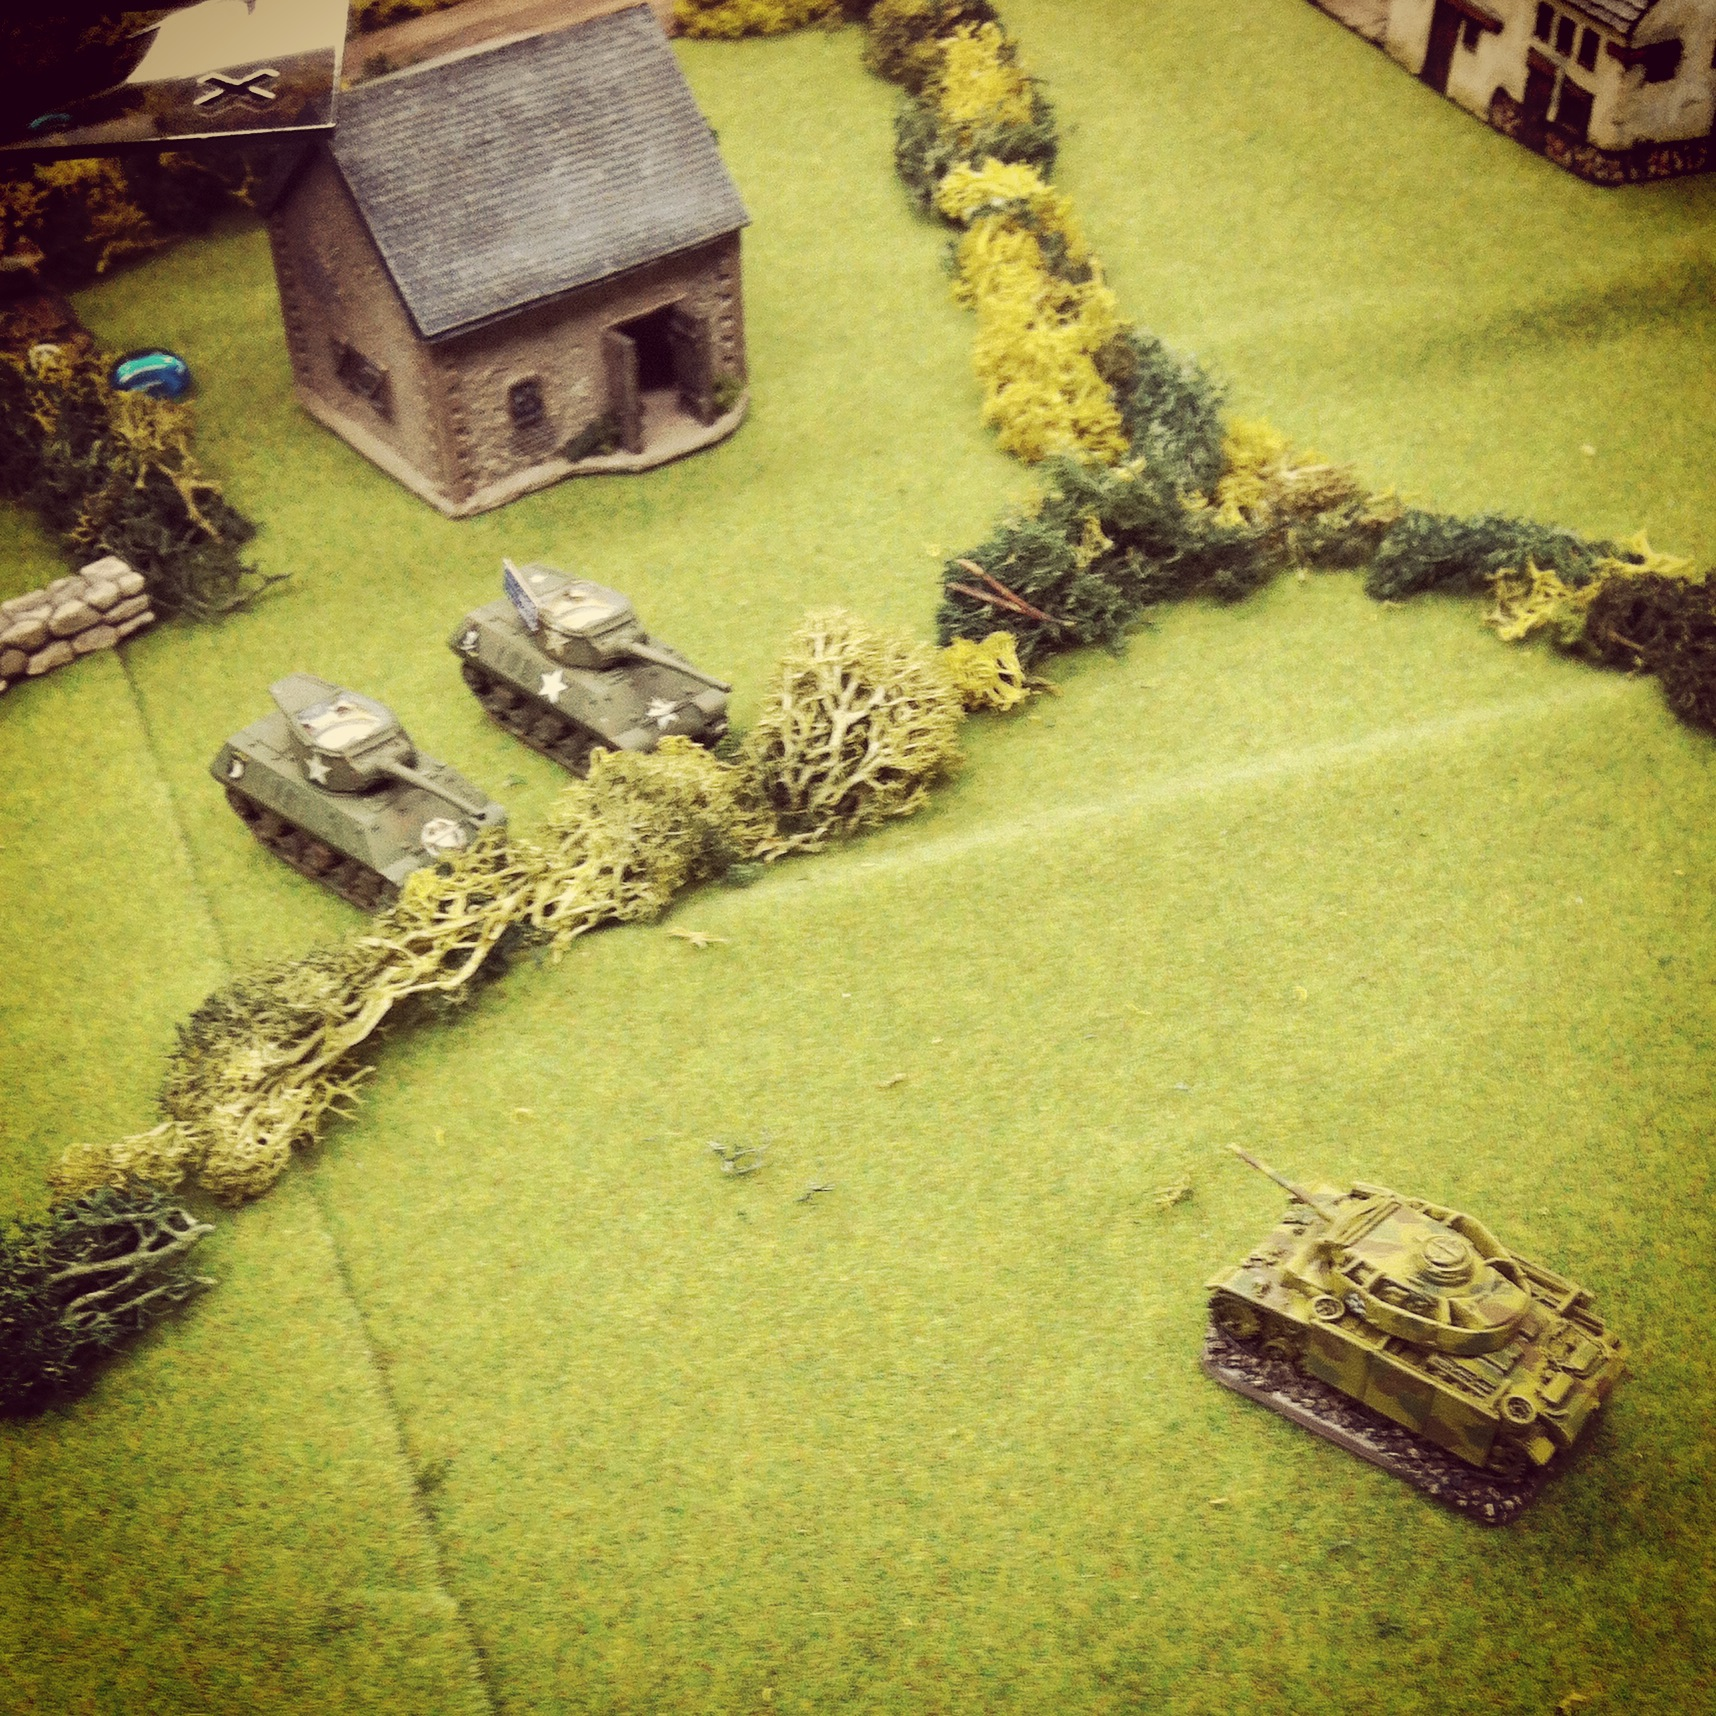 US Wolverines take aim at a German Panzer III flame tank in the open